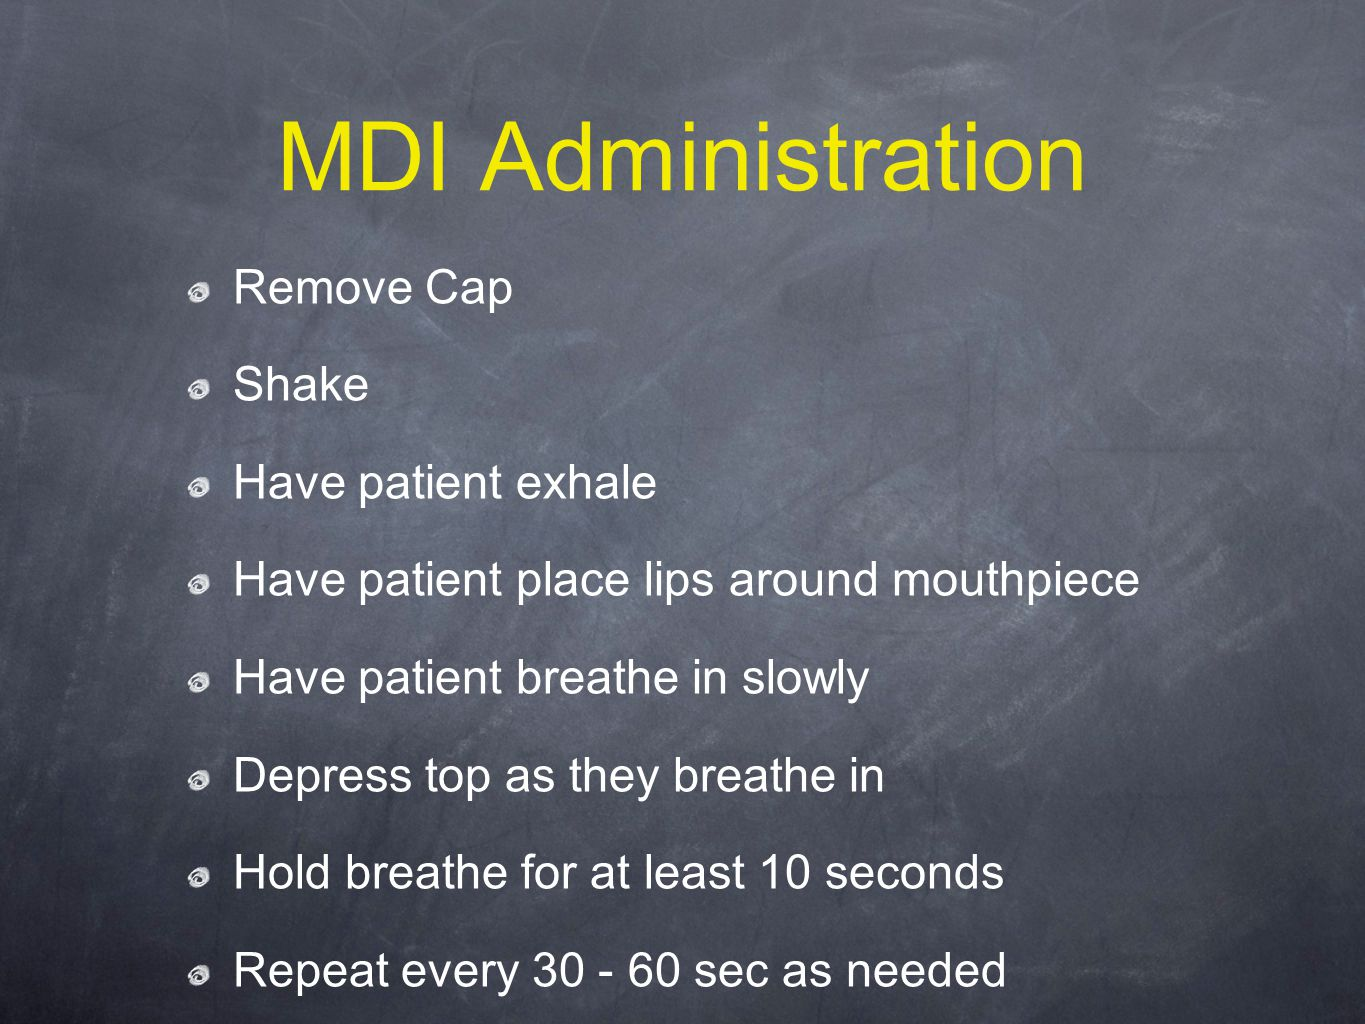 MDI Administration Remove Cap Shake Have patient exhale Have patient place lips around mouthpiece Have patient breathe in slowly Depress top as they breathe in Hold breathe for at least 10 seconds Repeat every 30 - 60 sec as needed